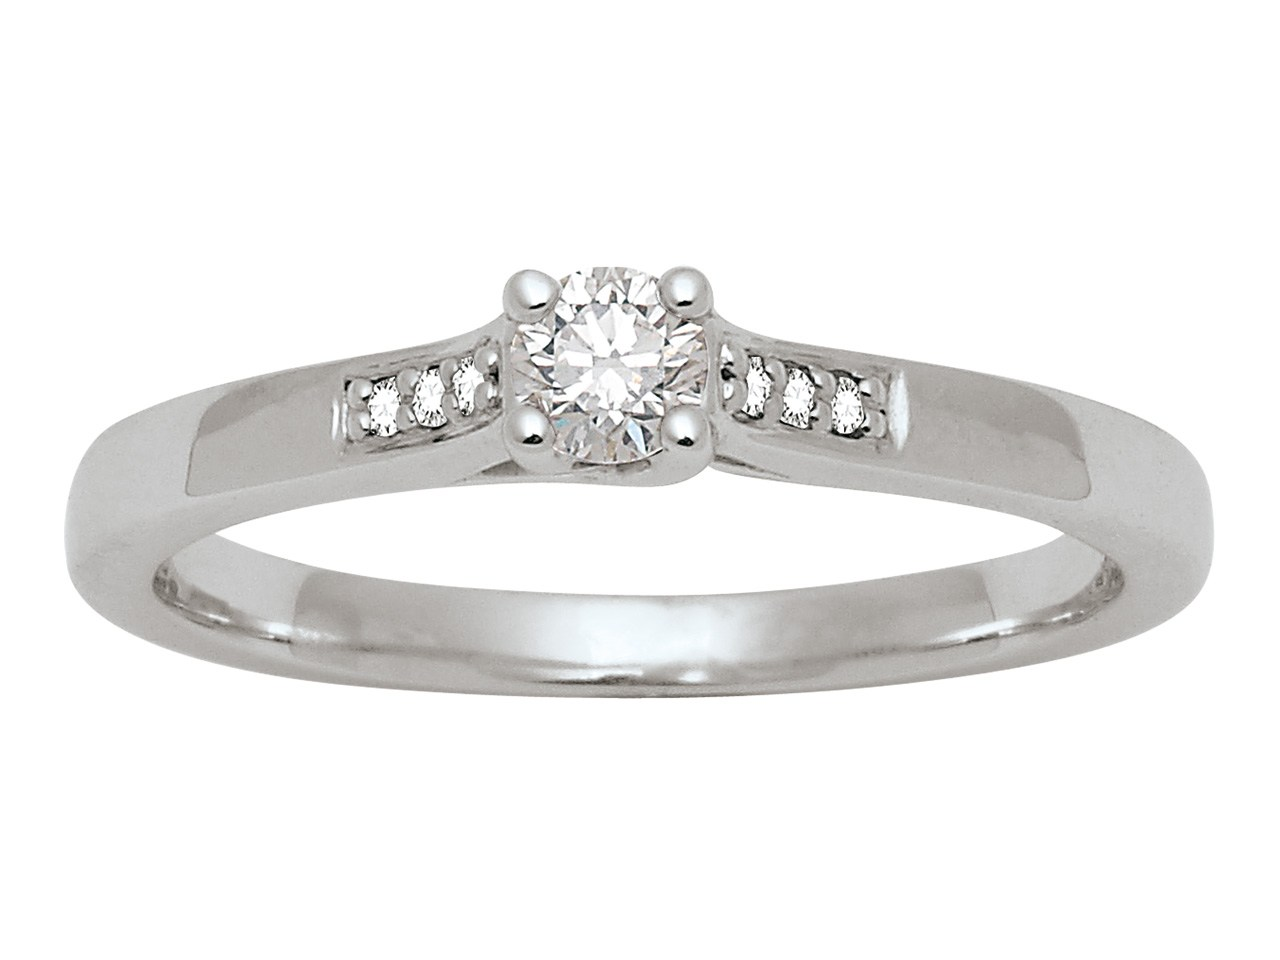 Solitaire accompagné, Or gris 18 k, Dts 0,18 ct, doigt 56